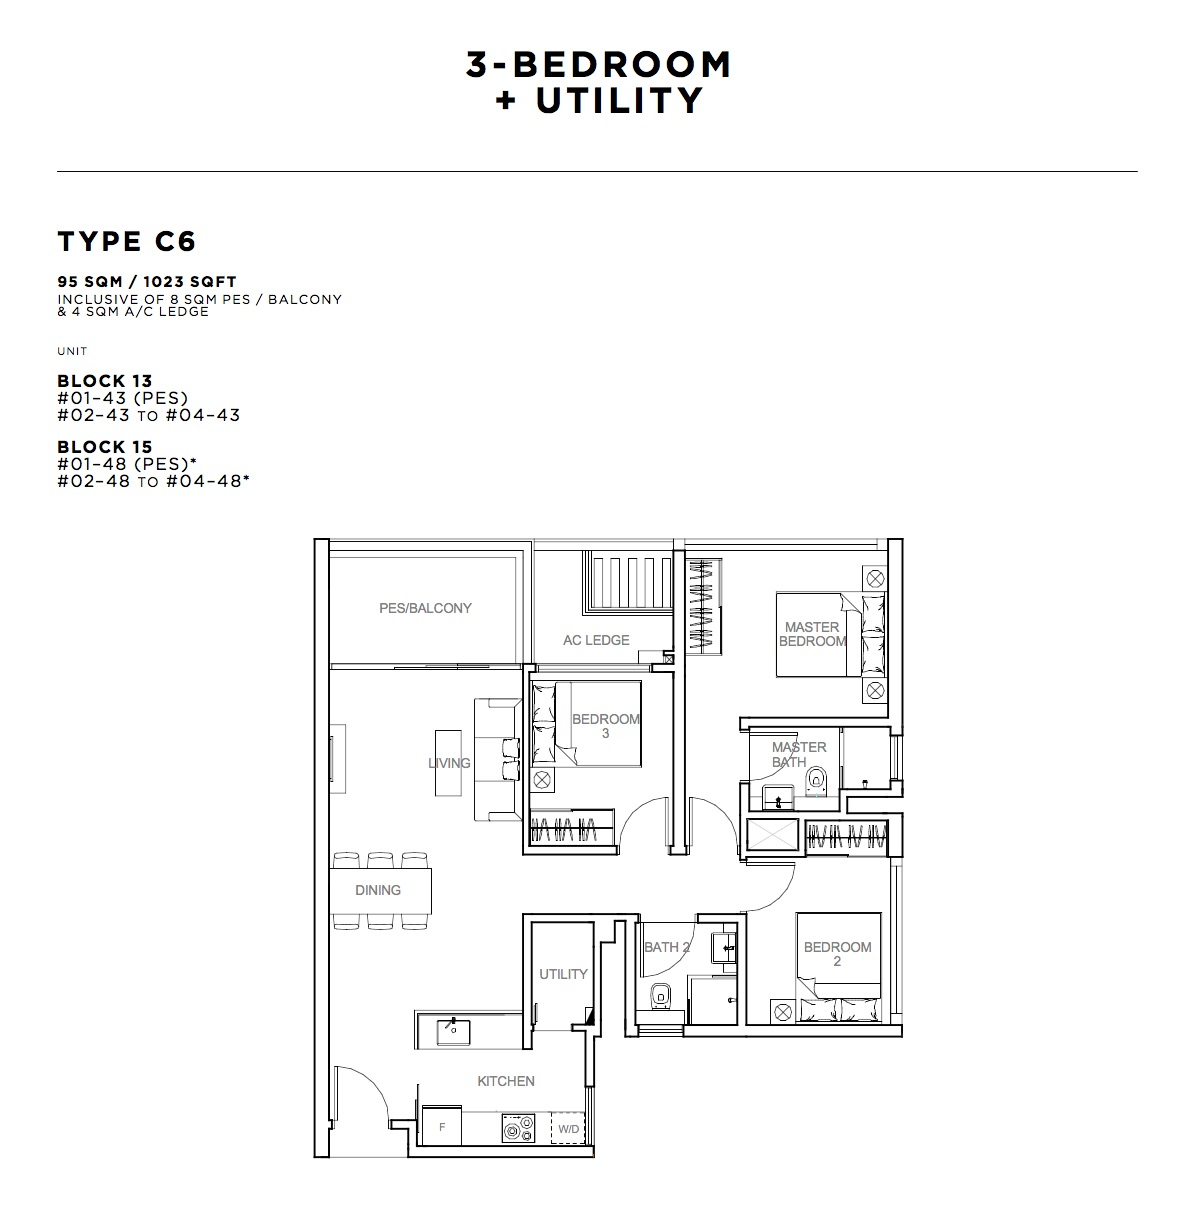 How Much Are Utilities For A 3 Bedroom Apartment 28 Images How Much Does A 2 Bedroom